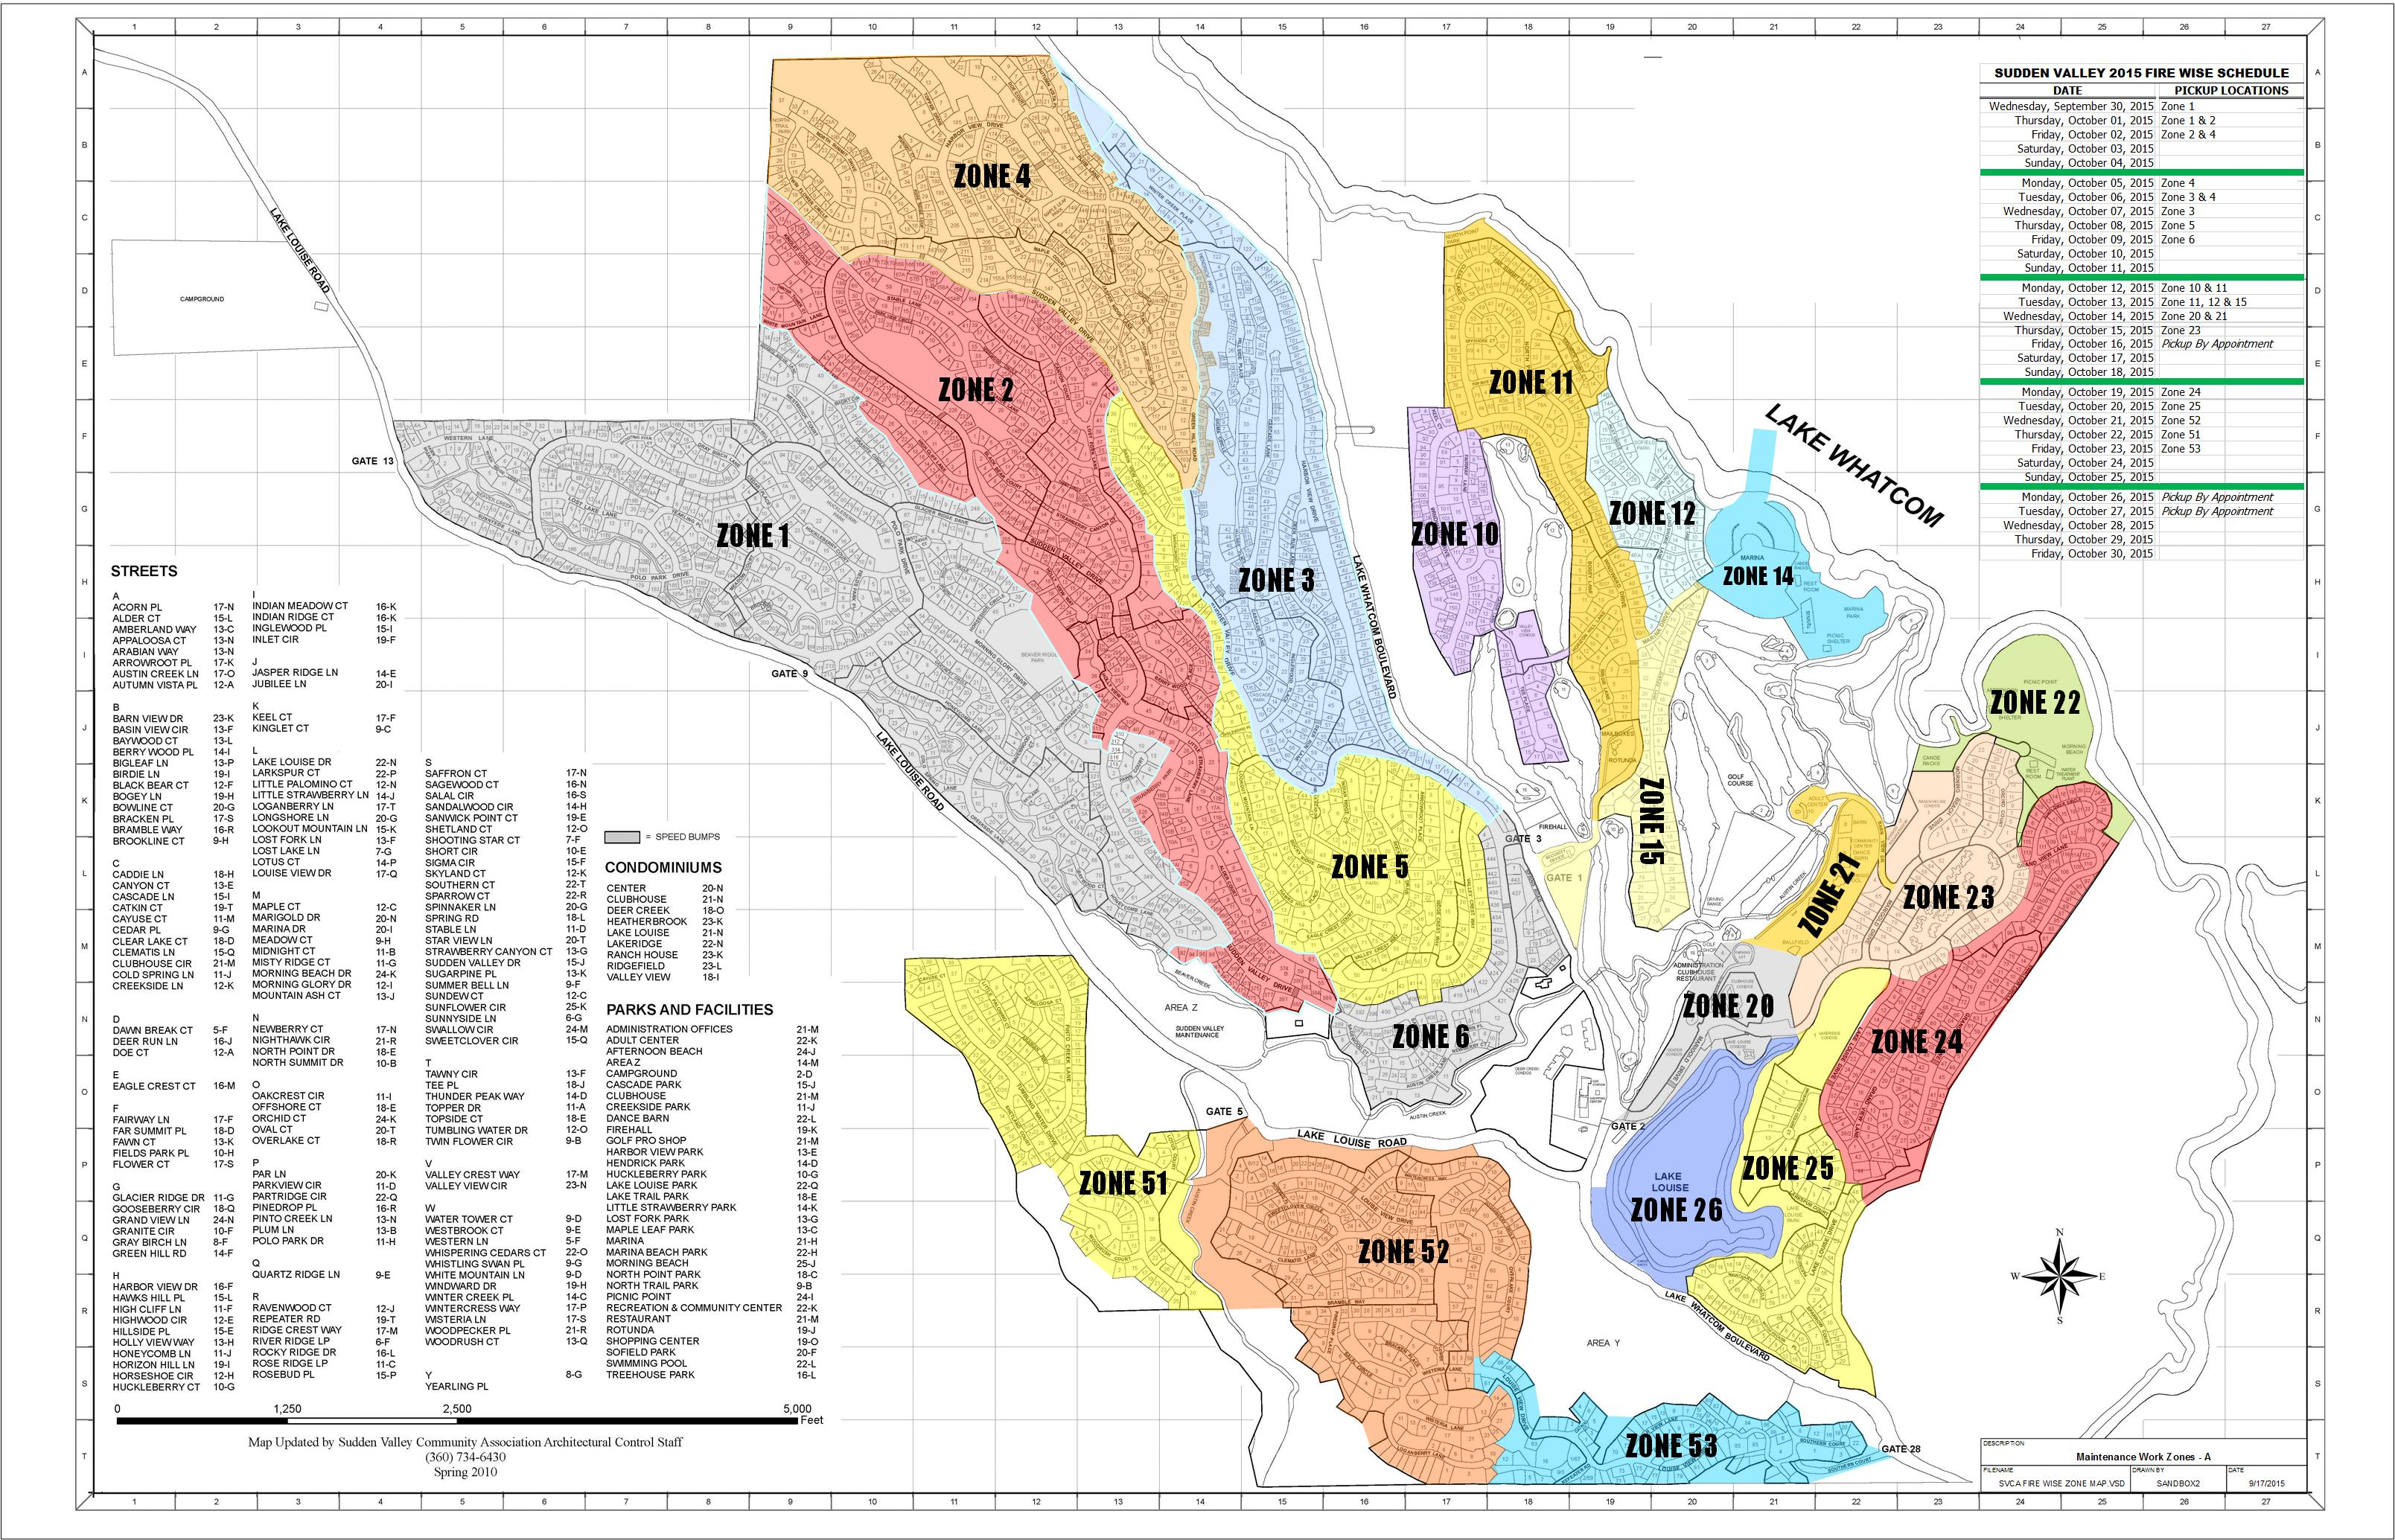 Svca fire wise zone map v2 sudden valley community association svca fire wise zone map v2 gumiabroncs Images